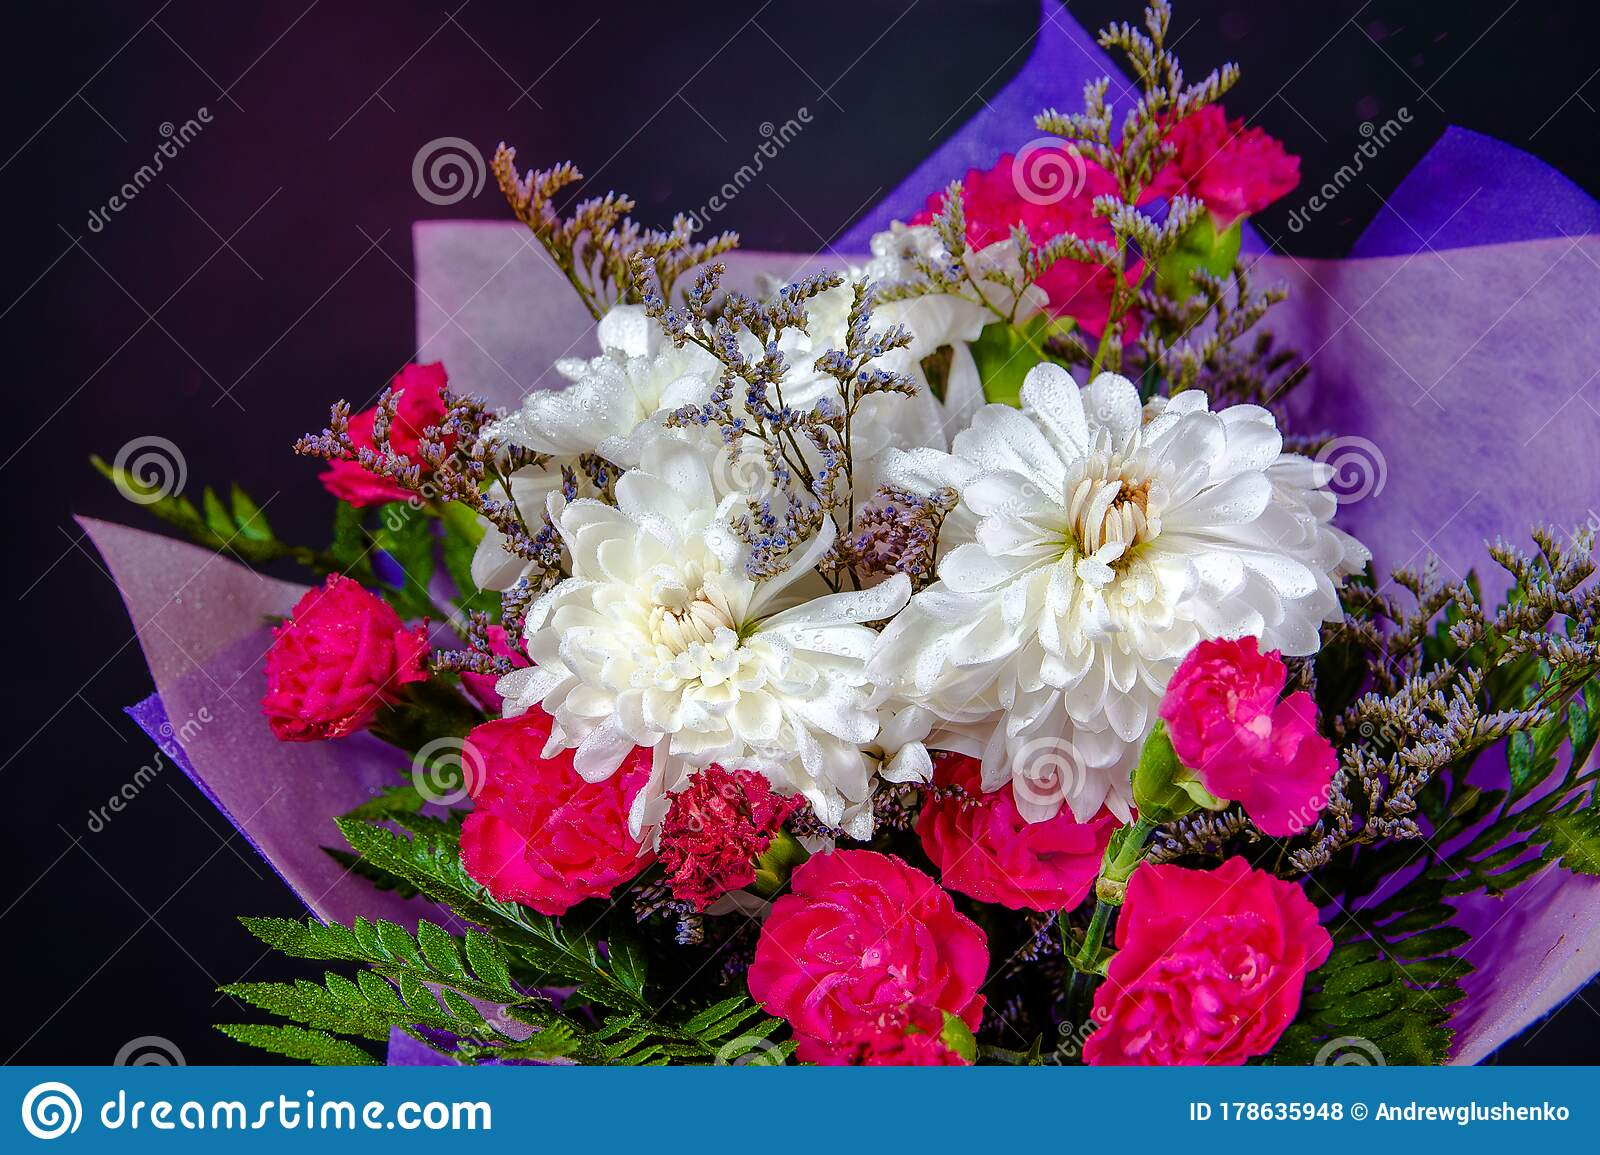 Bouquet Of Red And White Flowers In Purple Paper Close Up On A Black Background Stock Photo Image Of Green Plant 178635948